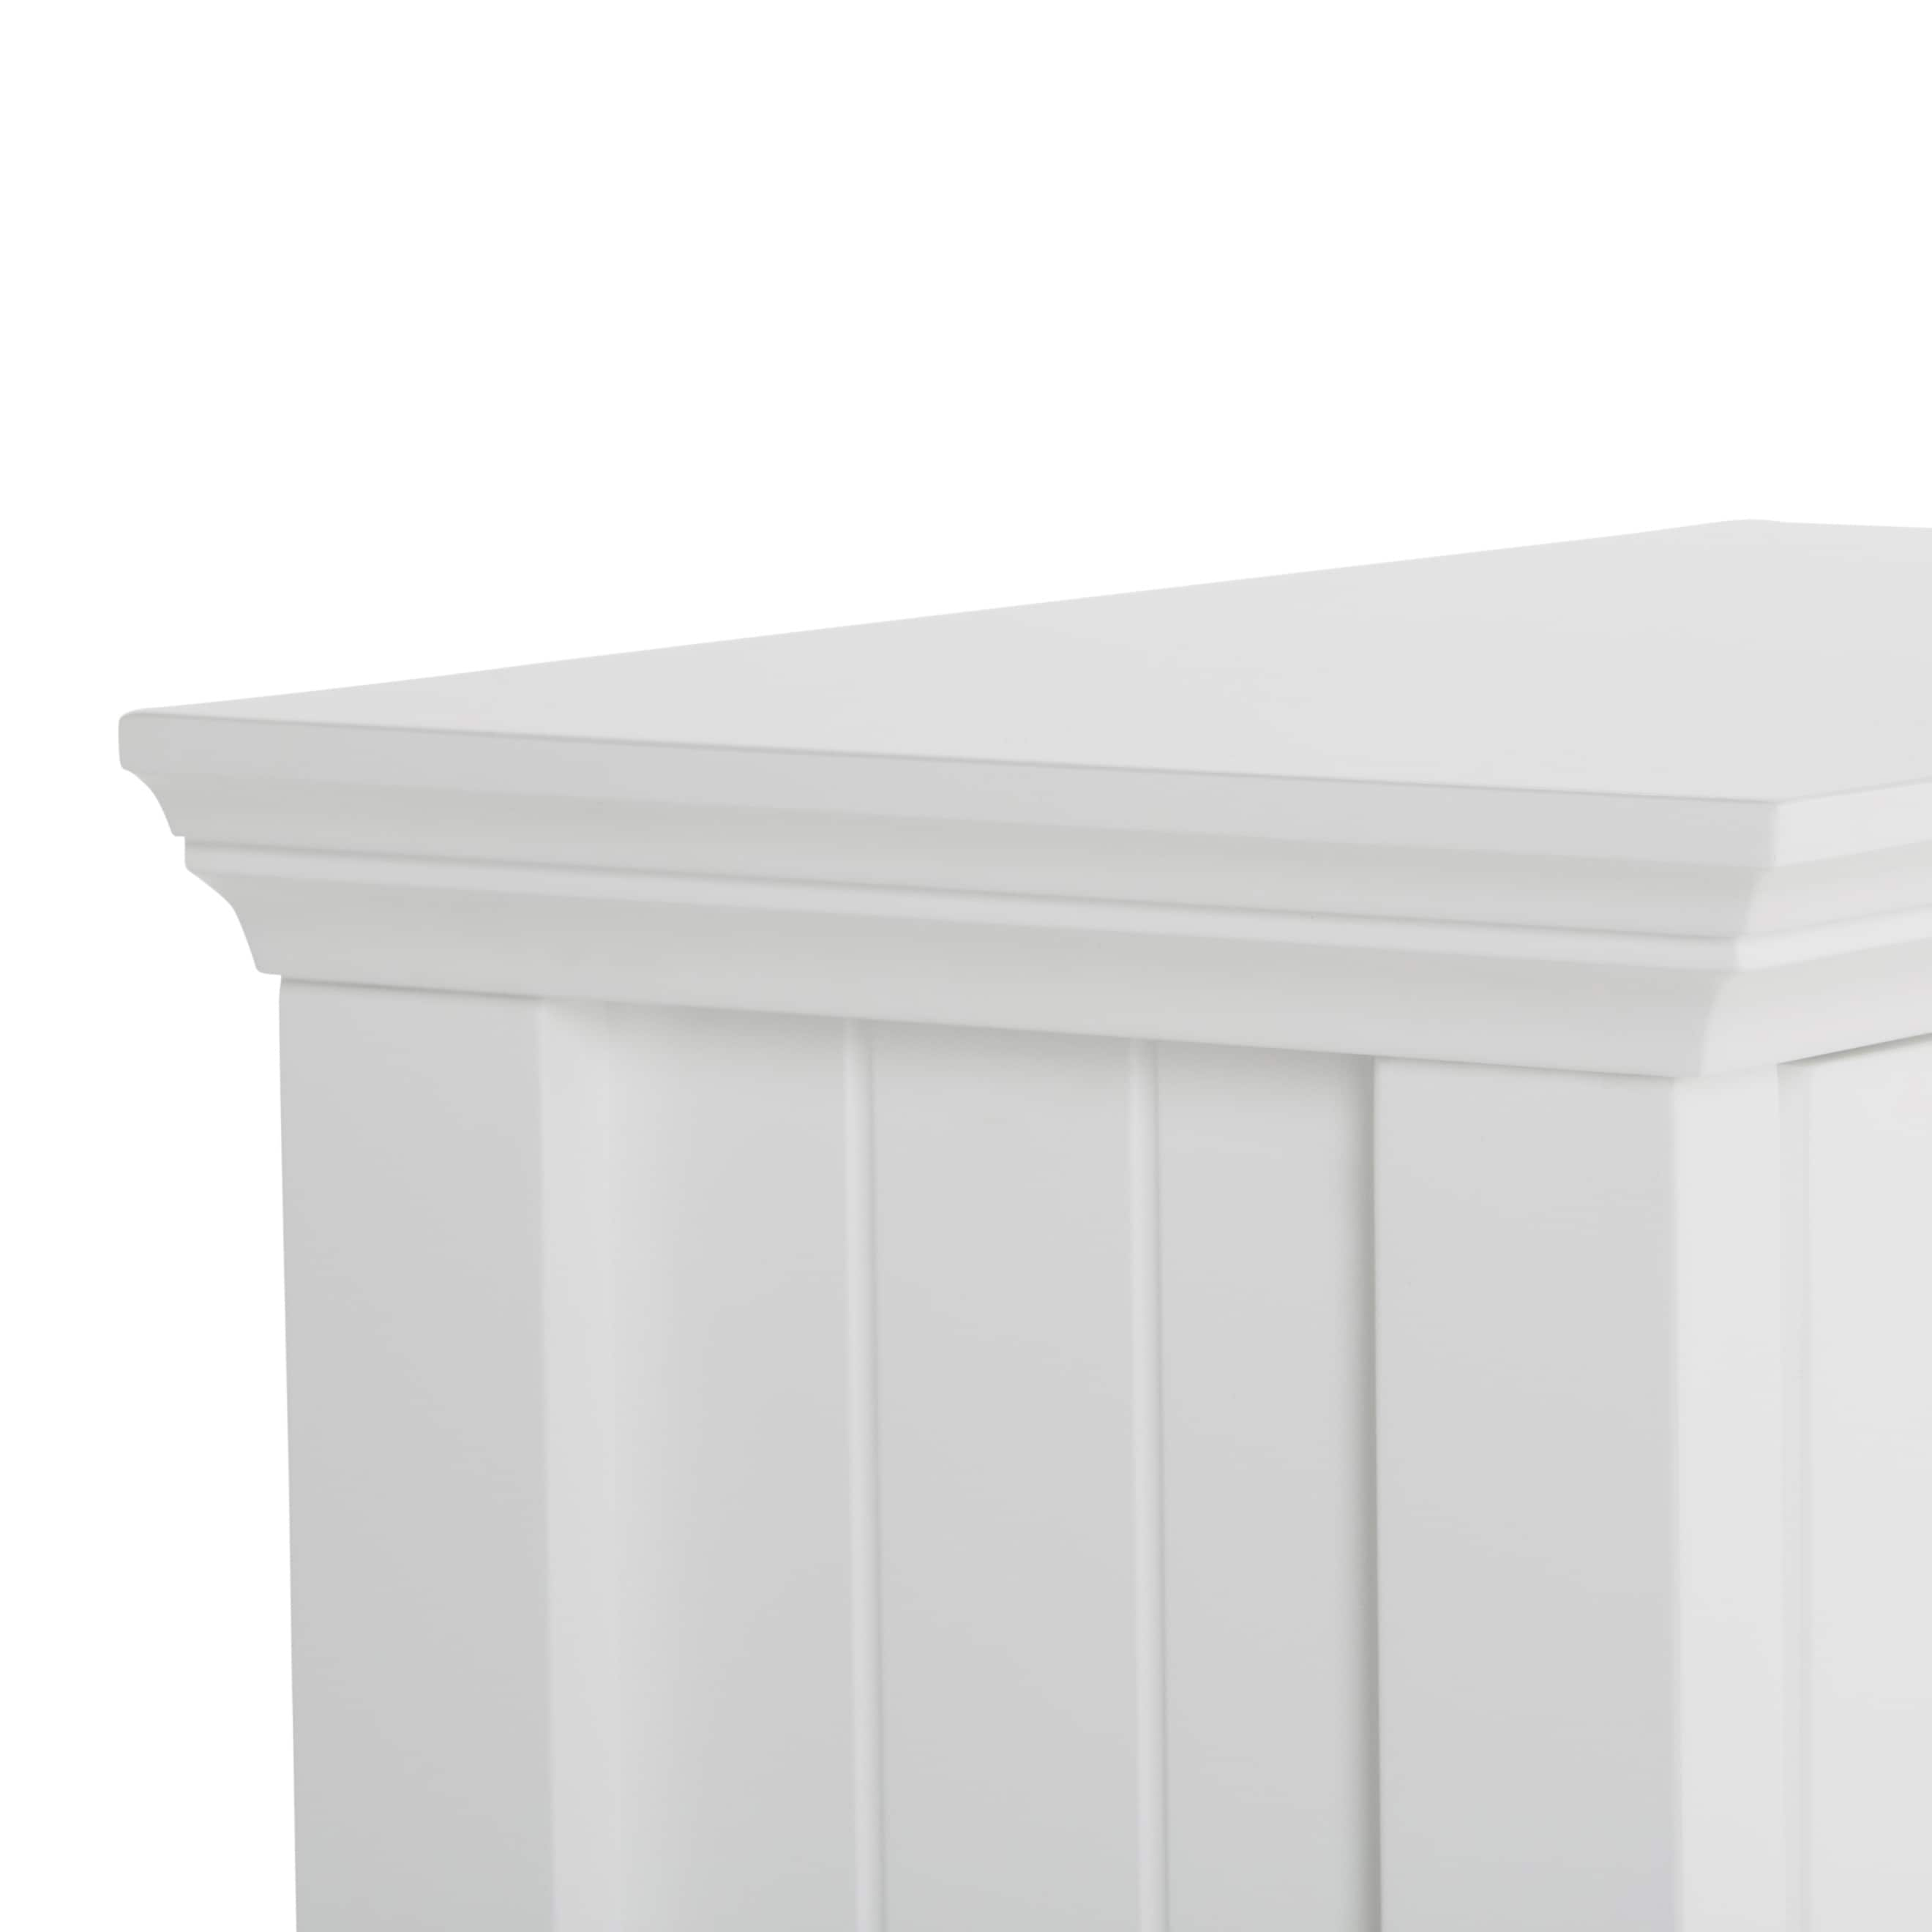 WYNDENHALL Normandy Single Door Wall Cabinet in White Free